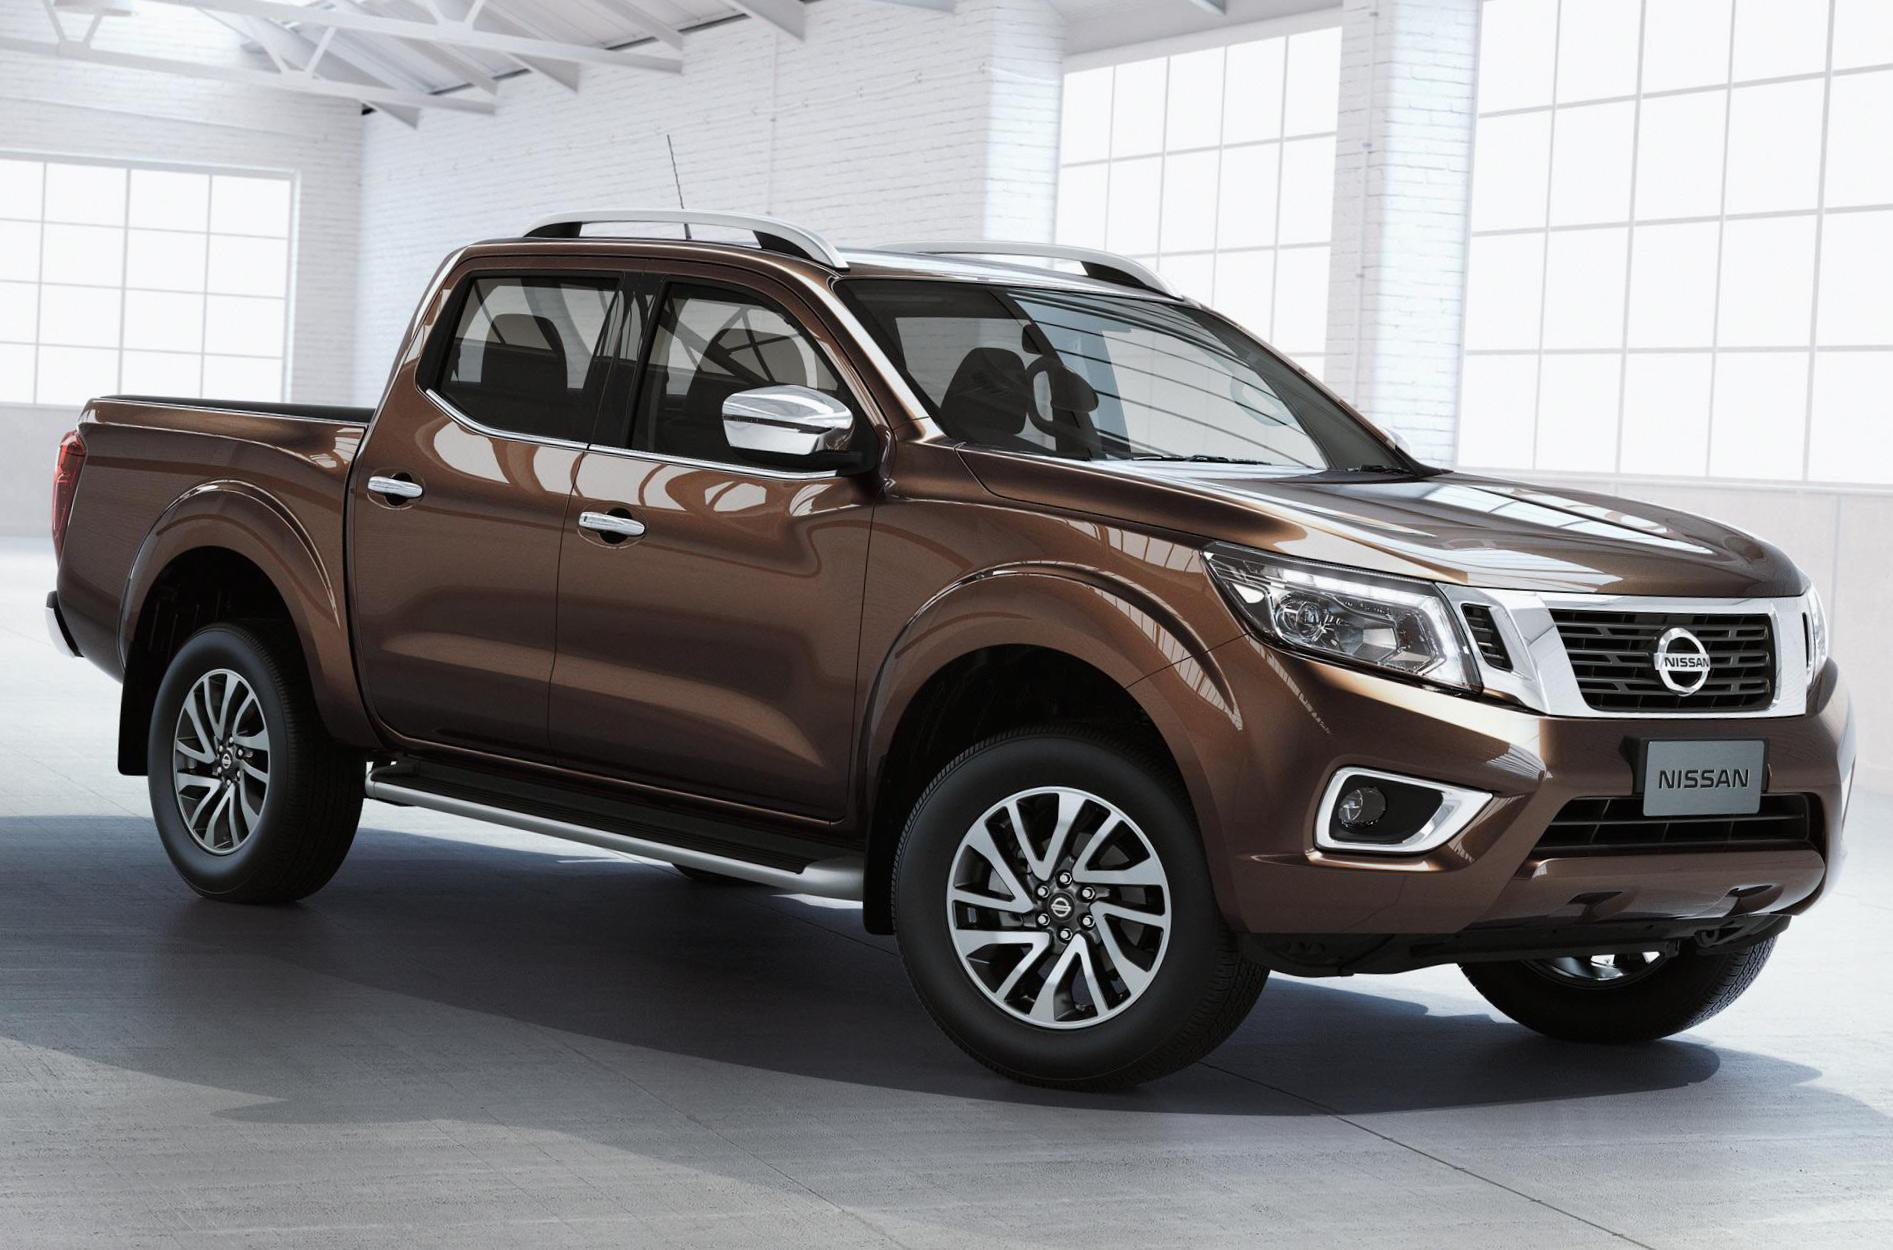 NP300 Navara King Cab Nissan sale hatchback